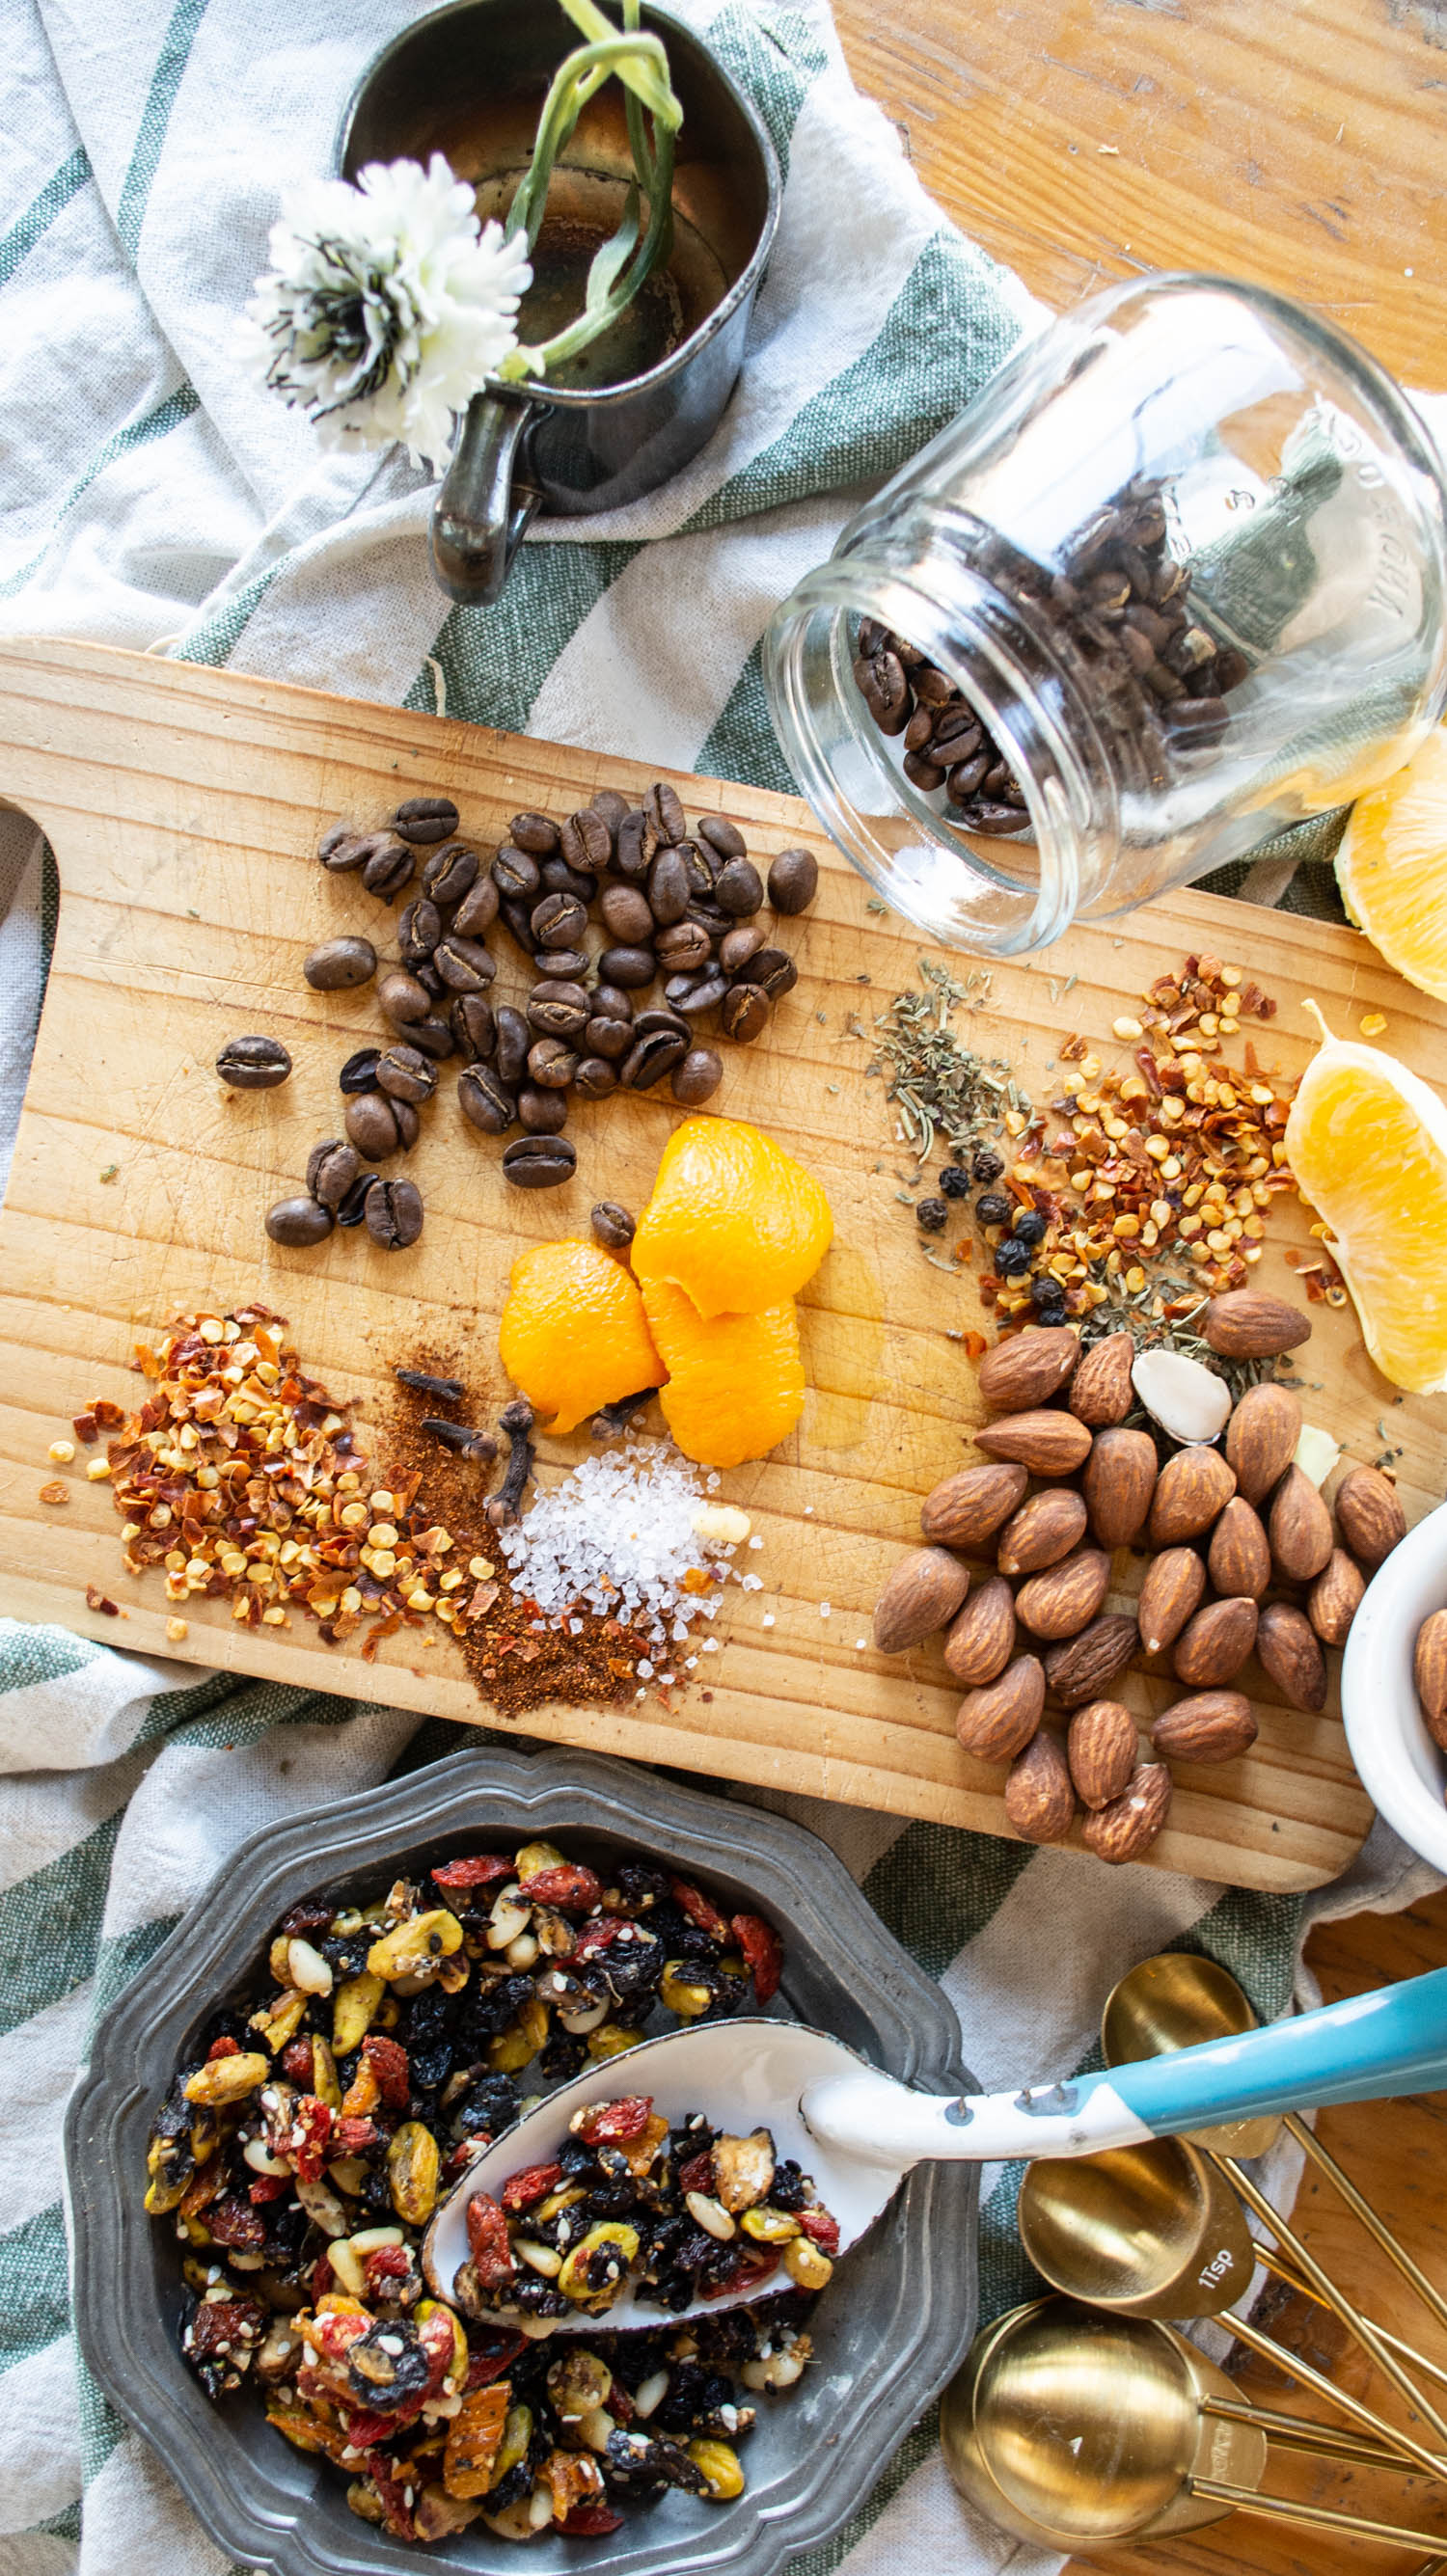 Trail mix raw ingredients arranged on a wooden chopping block. food photography